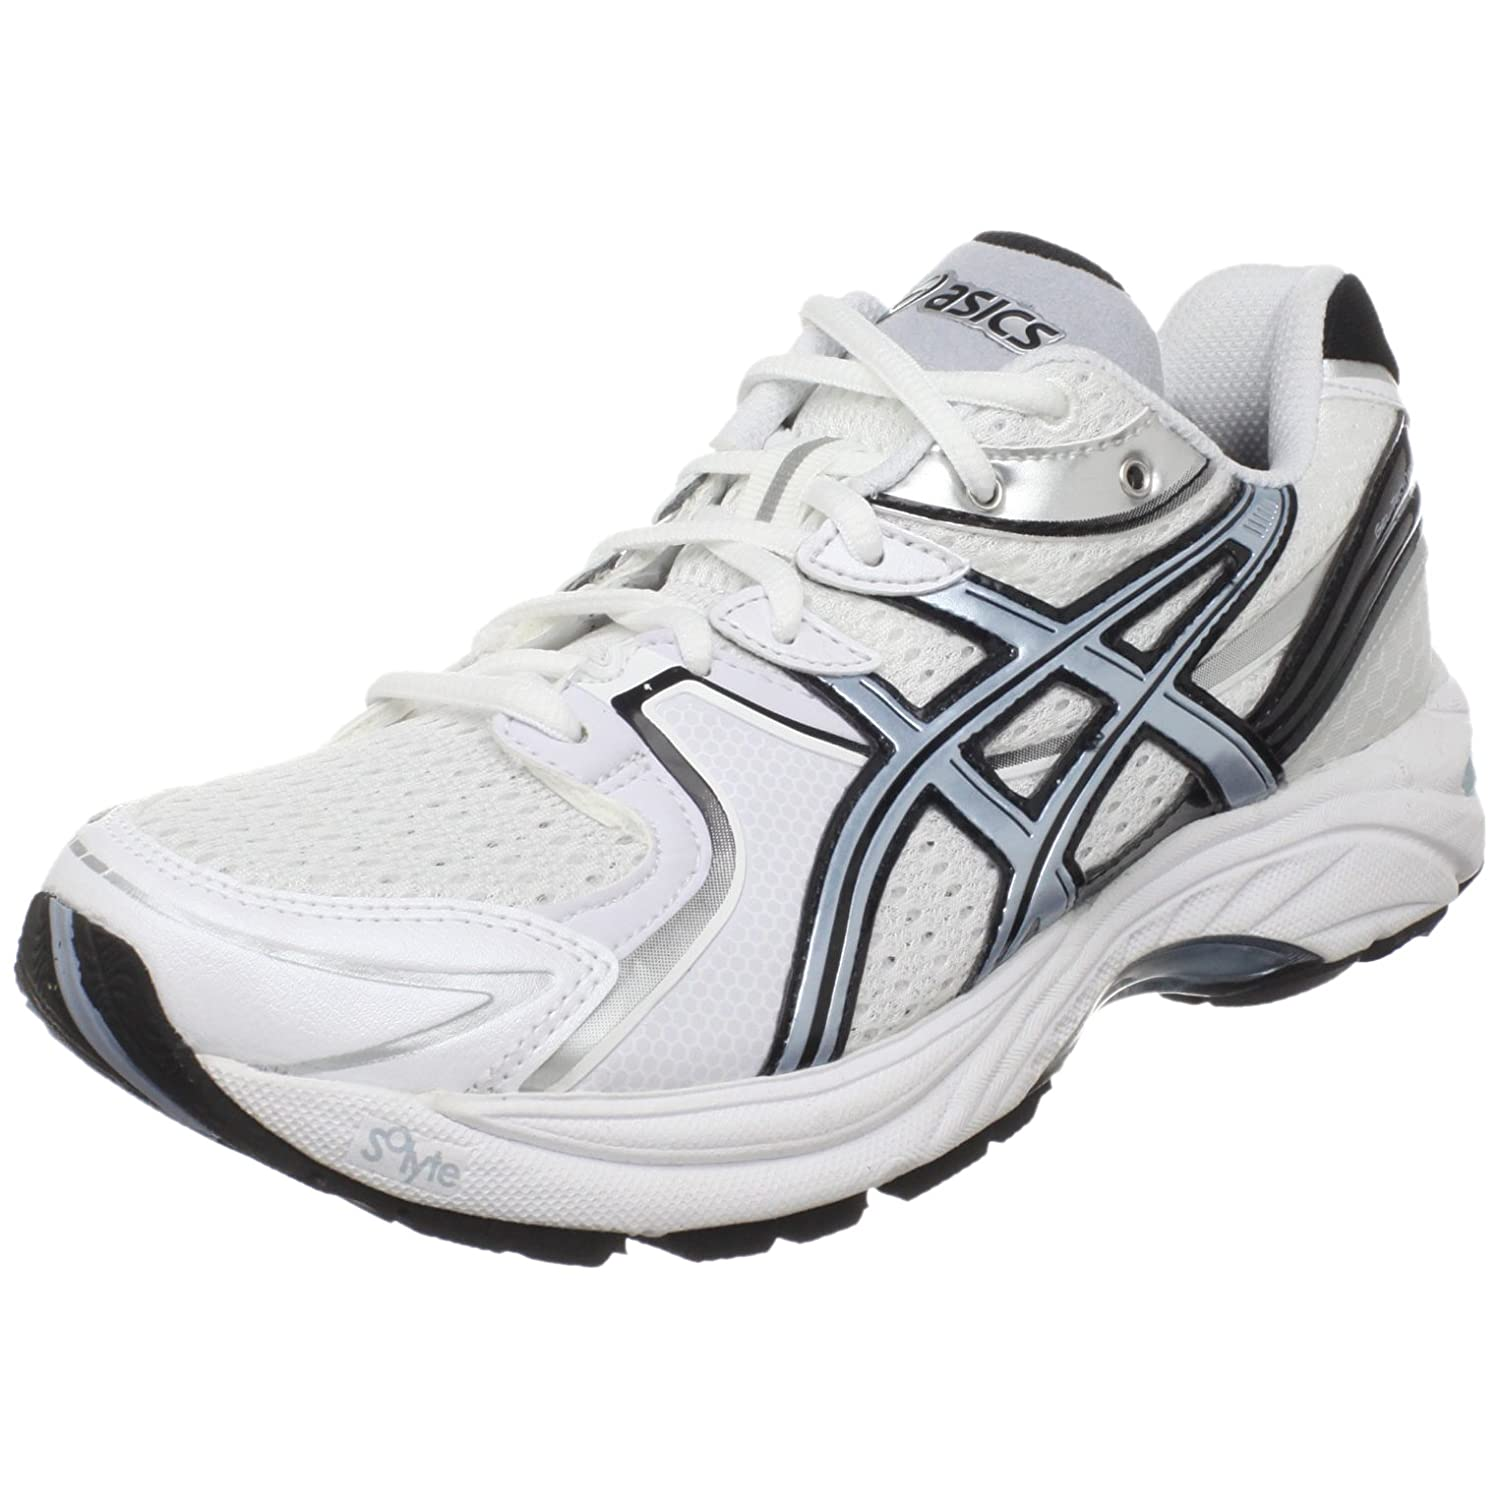 best asics walking shoes for men